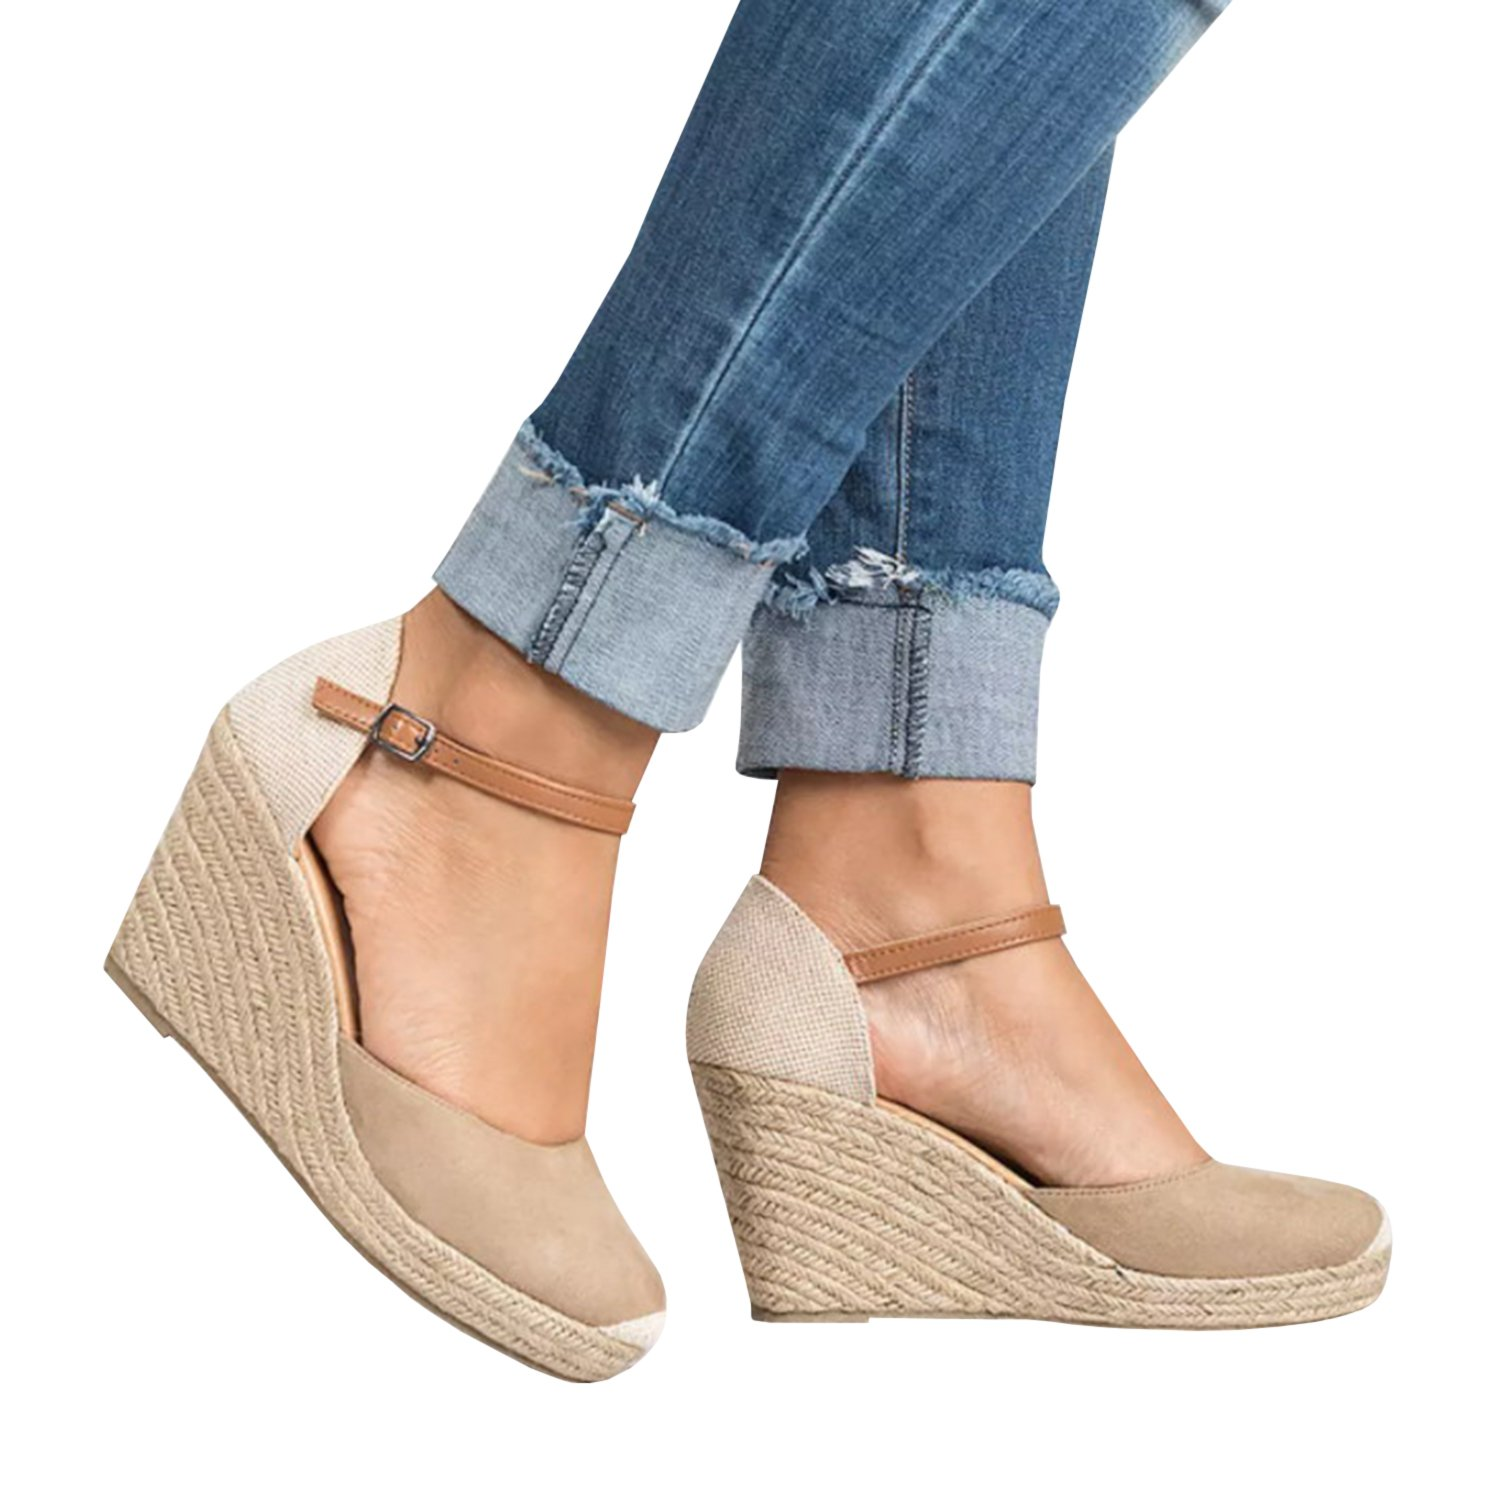 Feel Show Womens Casual Summer Espadrille Wedge Sandals Fashion Strap Buckle Suede Platform Shoes B07BVPS3SQ 7.5B(M)US - EU Size 38|Beige